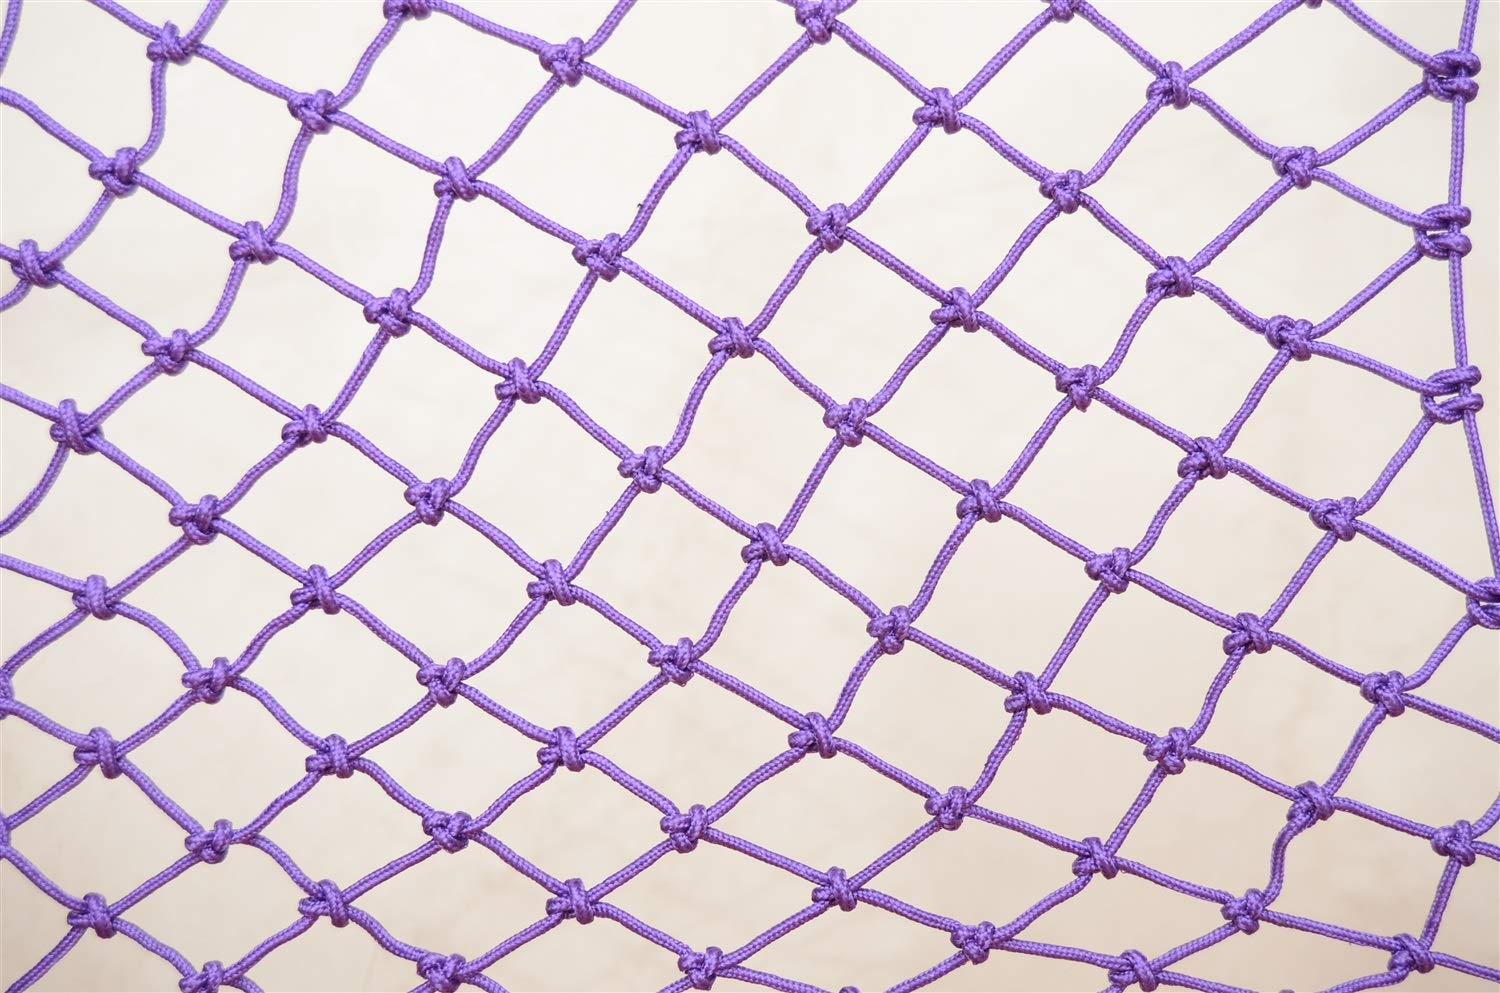 WBHGNDHH Child Safety Net-2m L X 3m H Removable Balcony and Stairway Safety Net Indoor and Outdoor Stairs Balcony Baby Fall Protection Safety Net ( Color : Purple ) by WBHGNDHH